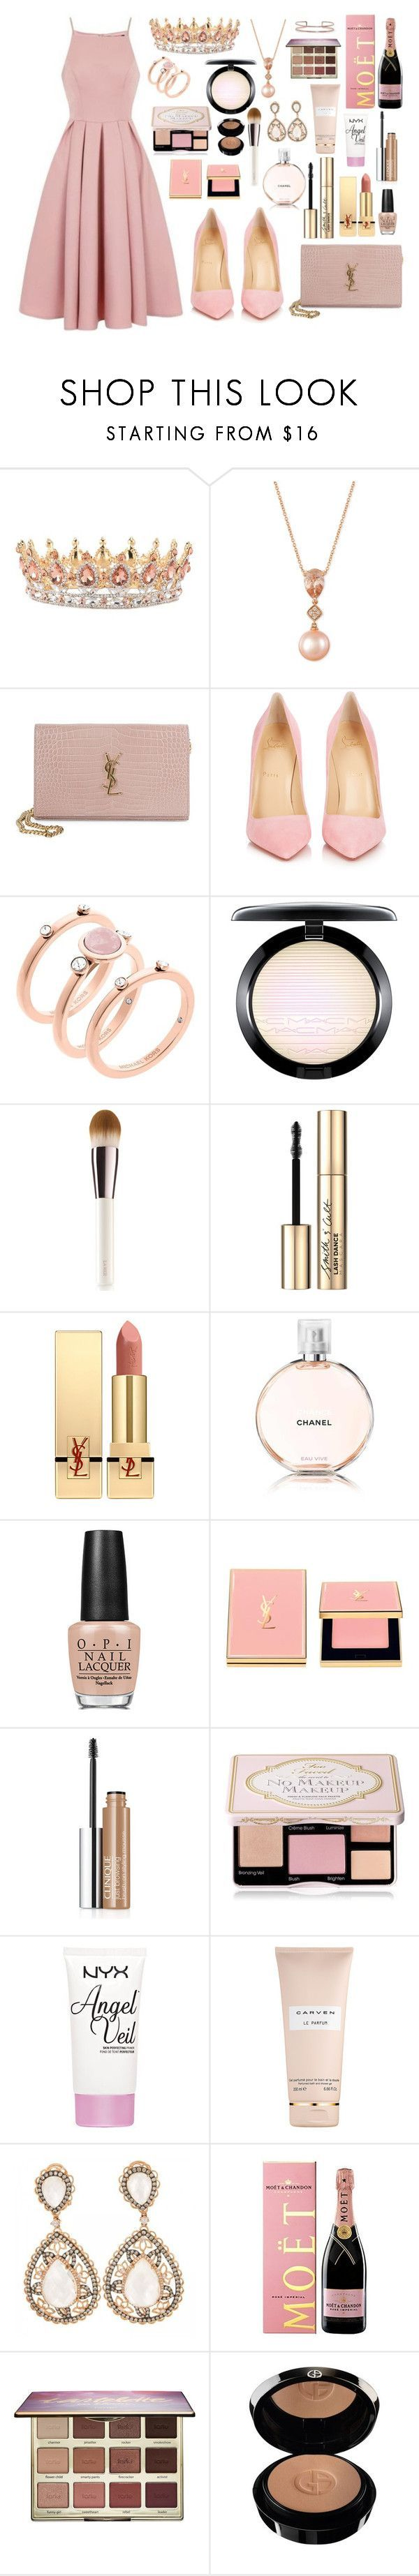 """""""Always a Bridesmaid - 2042"""" by thecaitlinpeters ❤ liked on Polyvore featuring Chi Chi, LE VIAN, Yves Saint Laurent, Christian Louboutin, Michael Kors, MAC Cosmetics, La Mer, Smith & Cult, Chanel and OPI"""